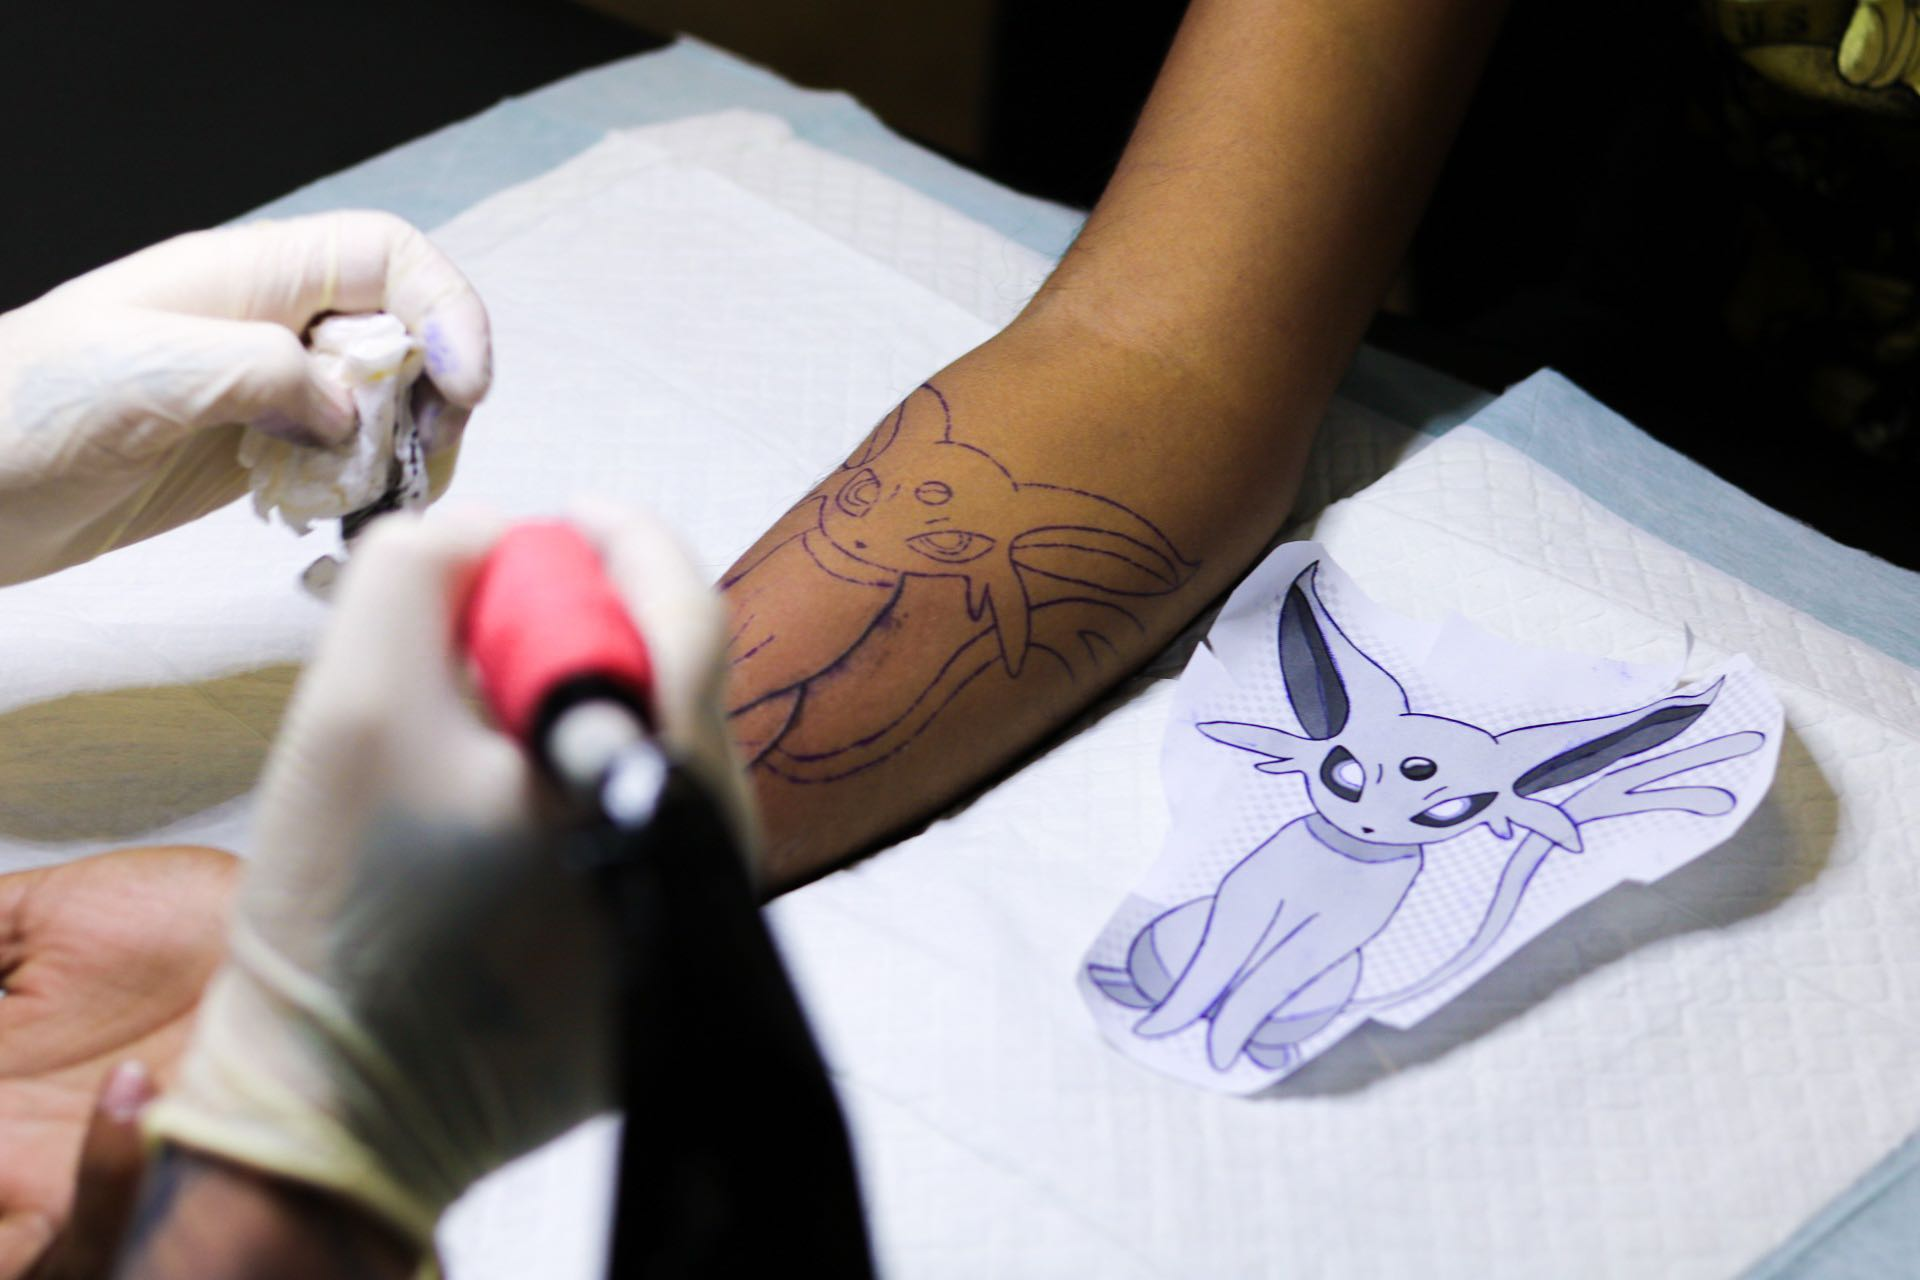 Introducing Sheldon Shaw ofFine Line Tattoo and Piercing Studio as our featured Tattoo Artist